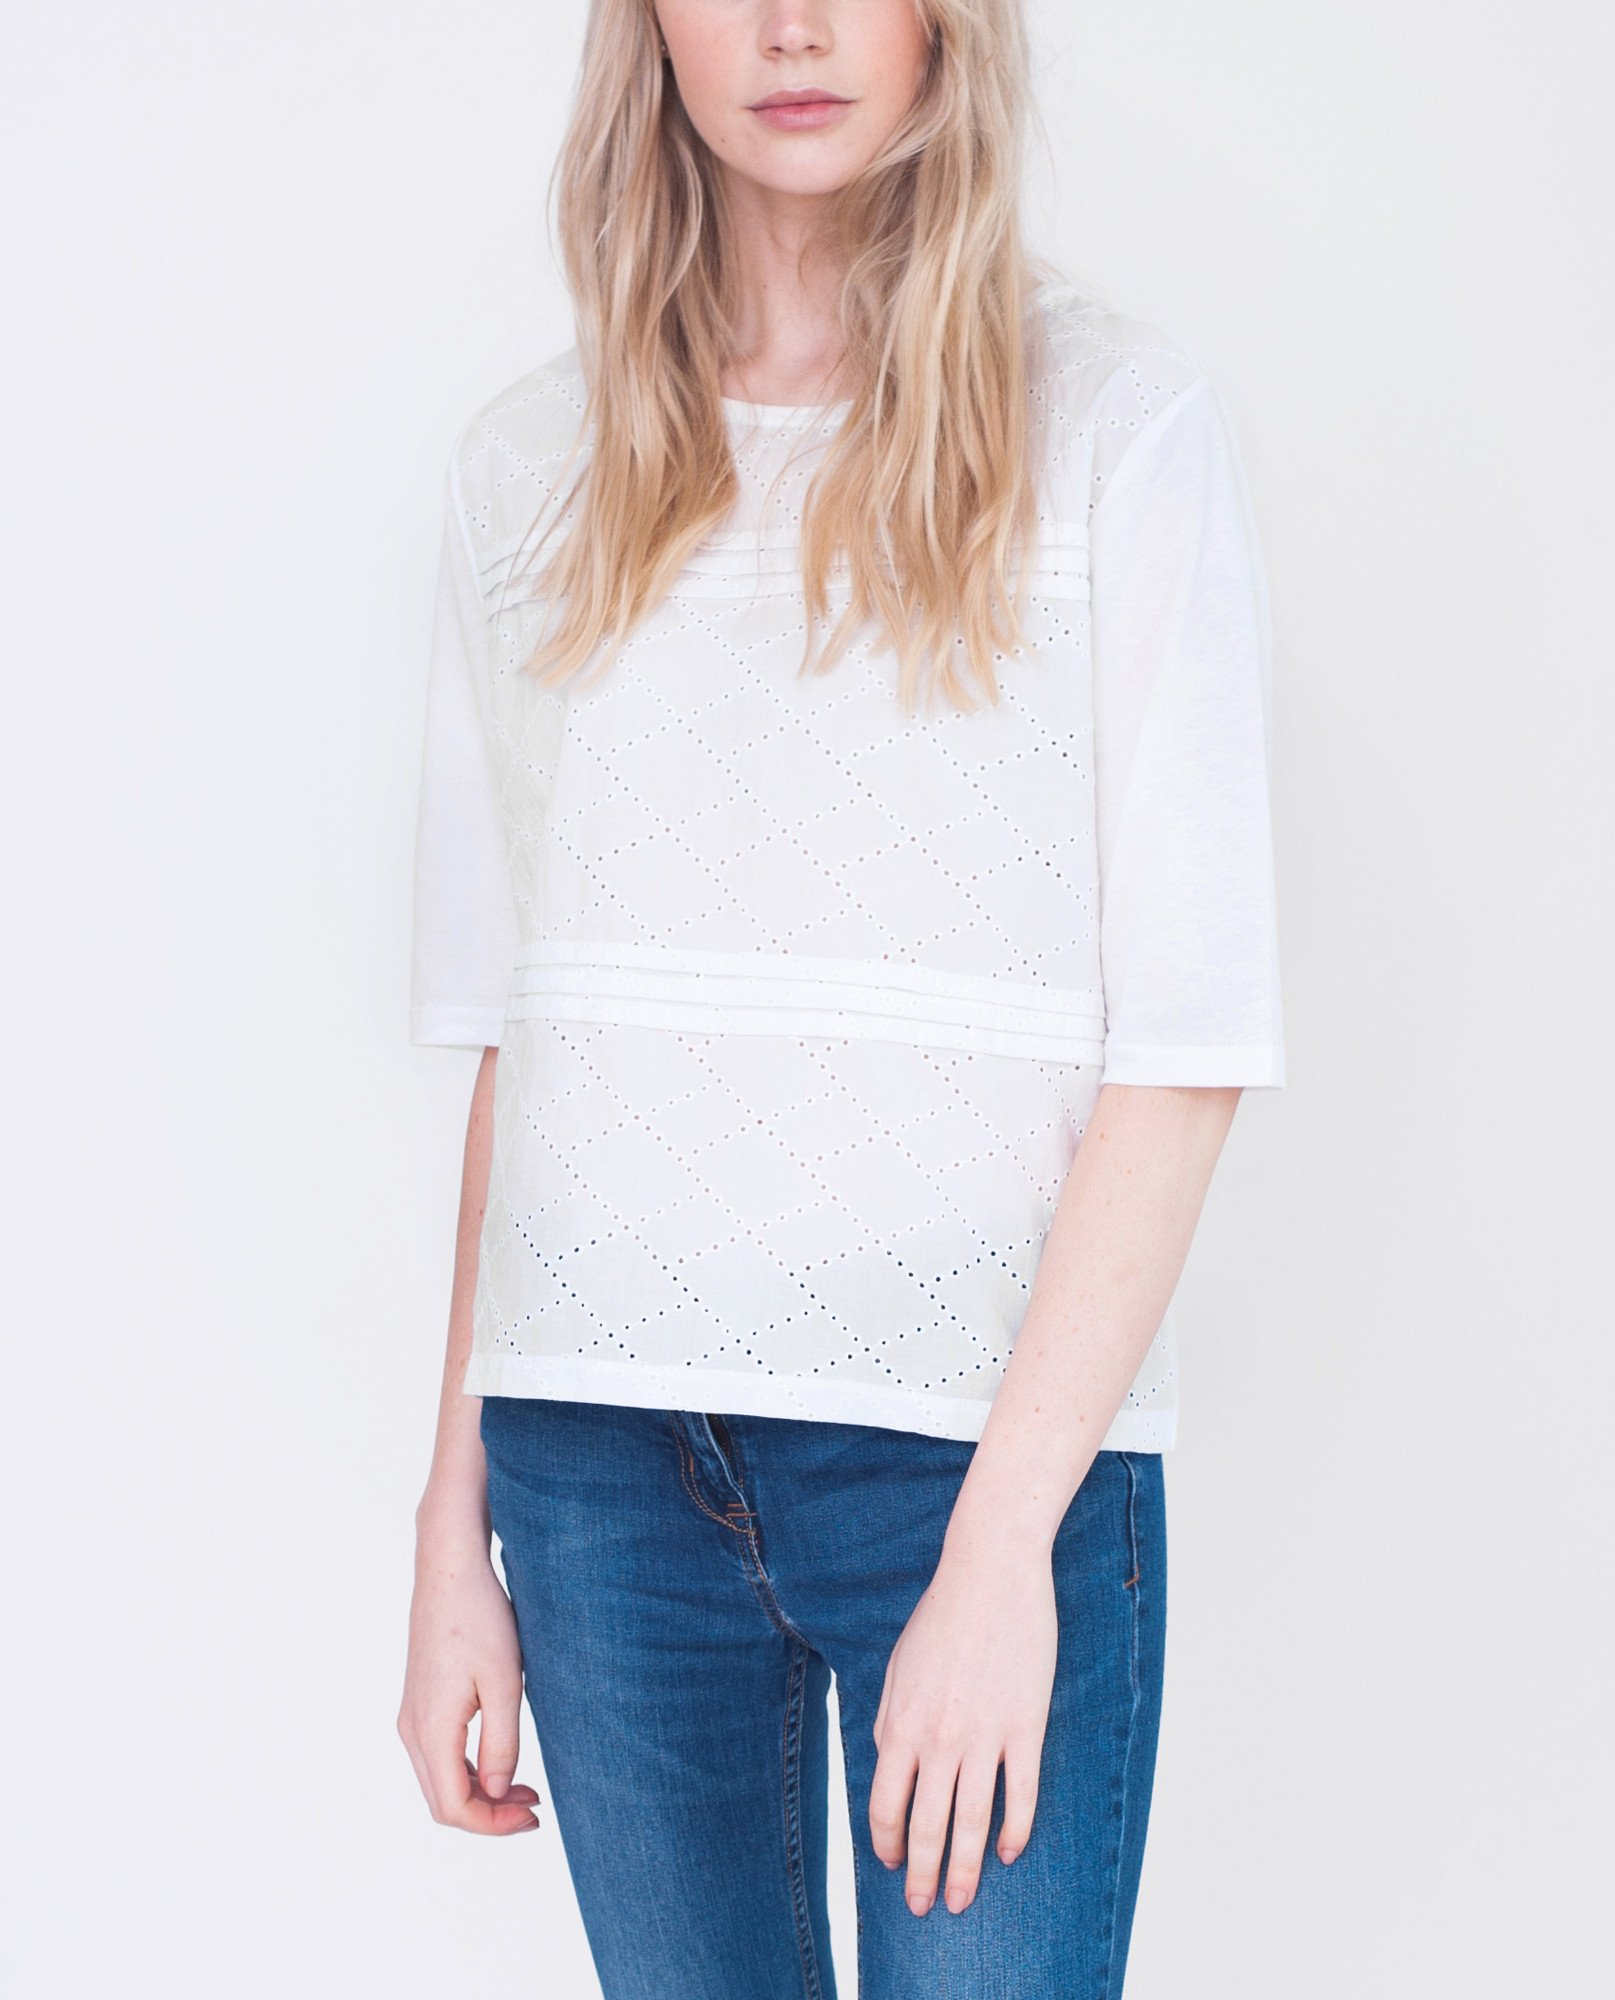 EMILIA Cotton Embroidered Blouse from Beaumont Organic